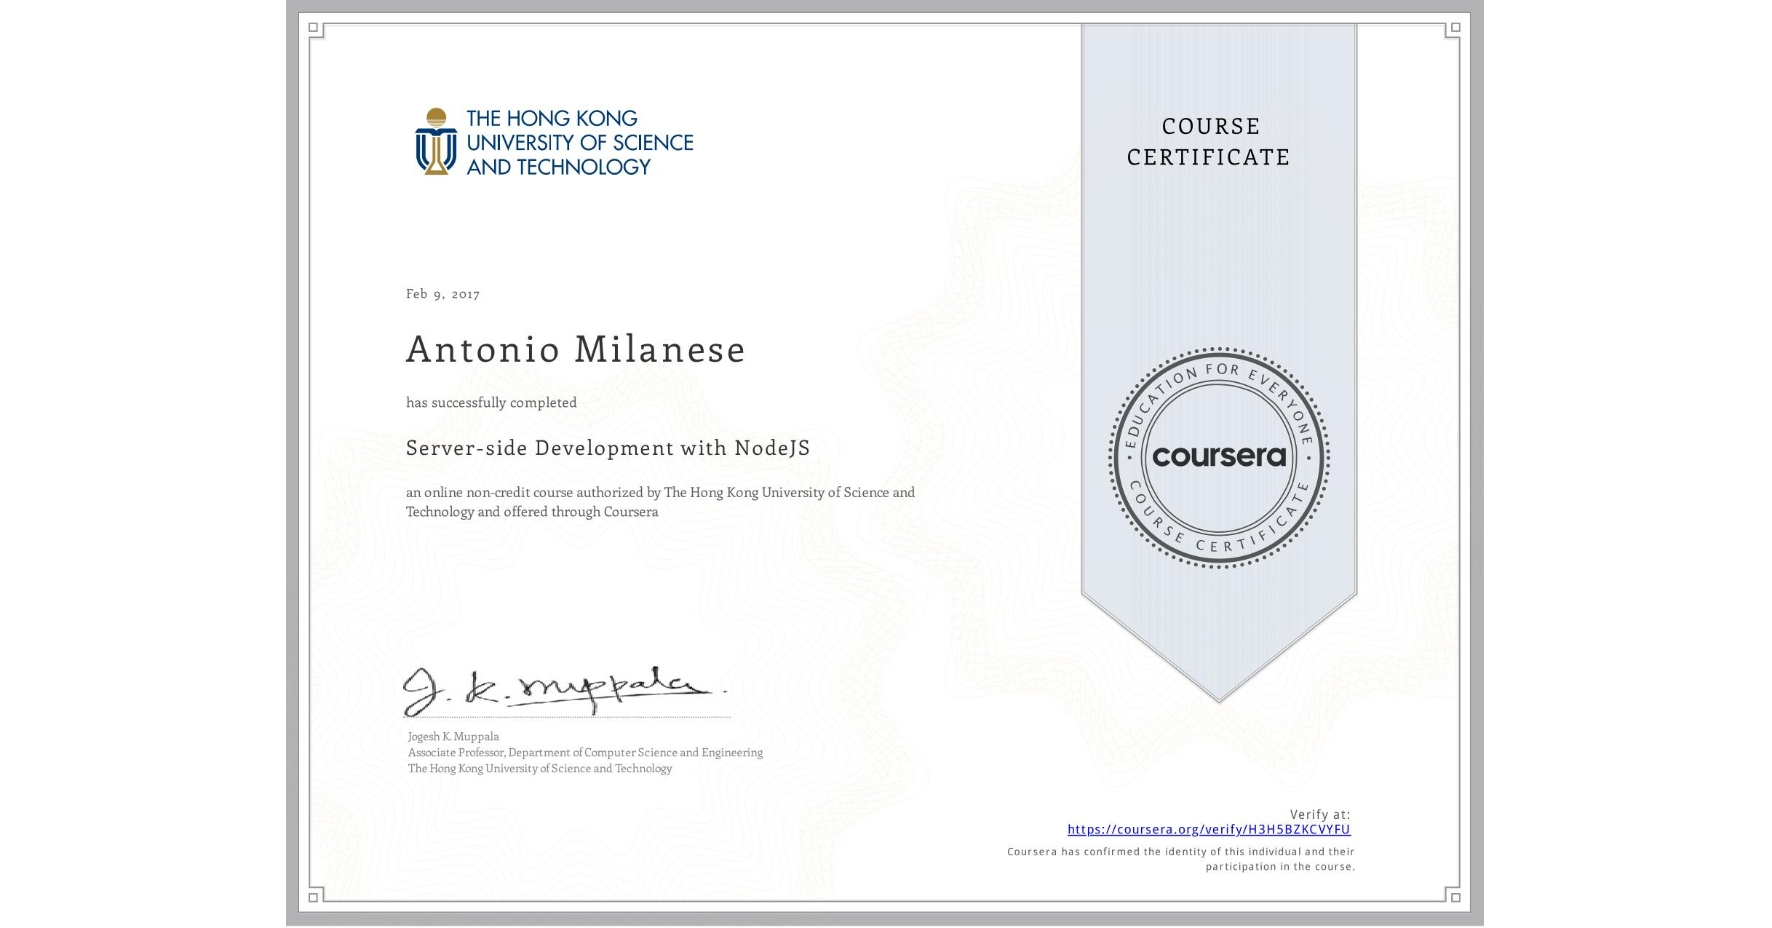 View certificate for Antonio Milanese, Server-side Development with NodeJS, an online non-credit course authorized by The Hong Kong University of Science and Technology and offered through Coursera